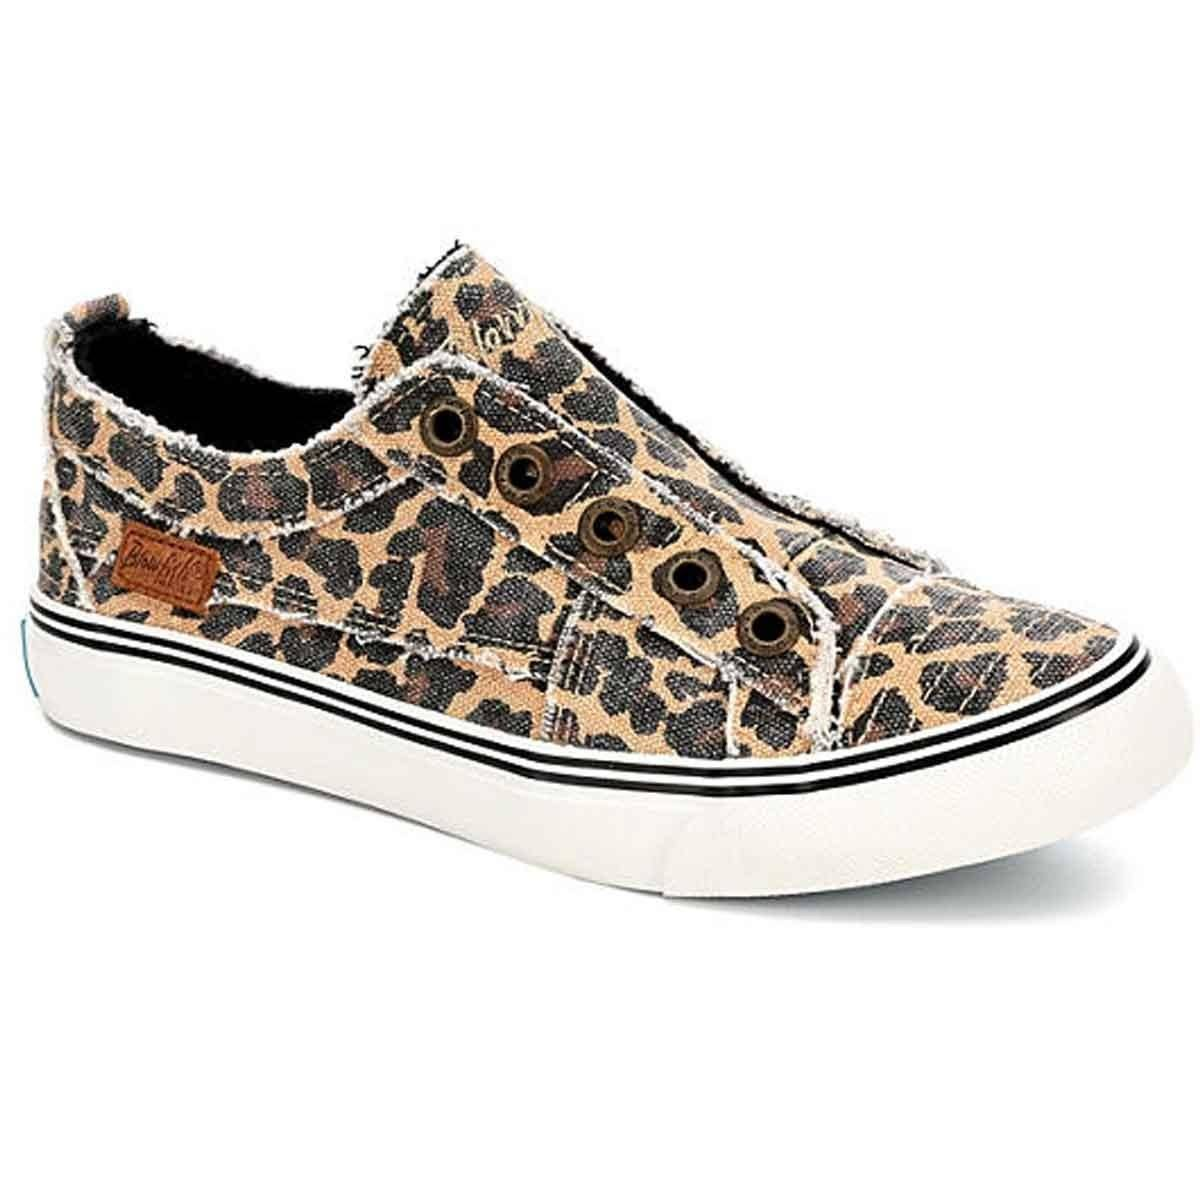 Blowfish Women's Play Slip on Sneakers (Natural Animal) - Size 7.0 M